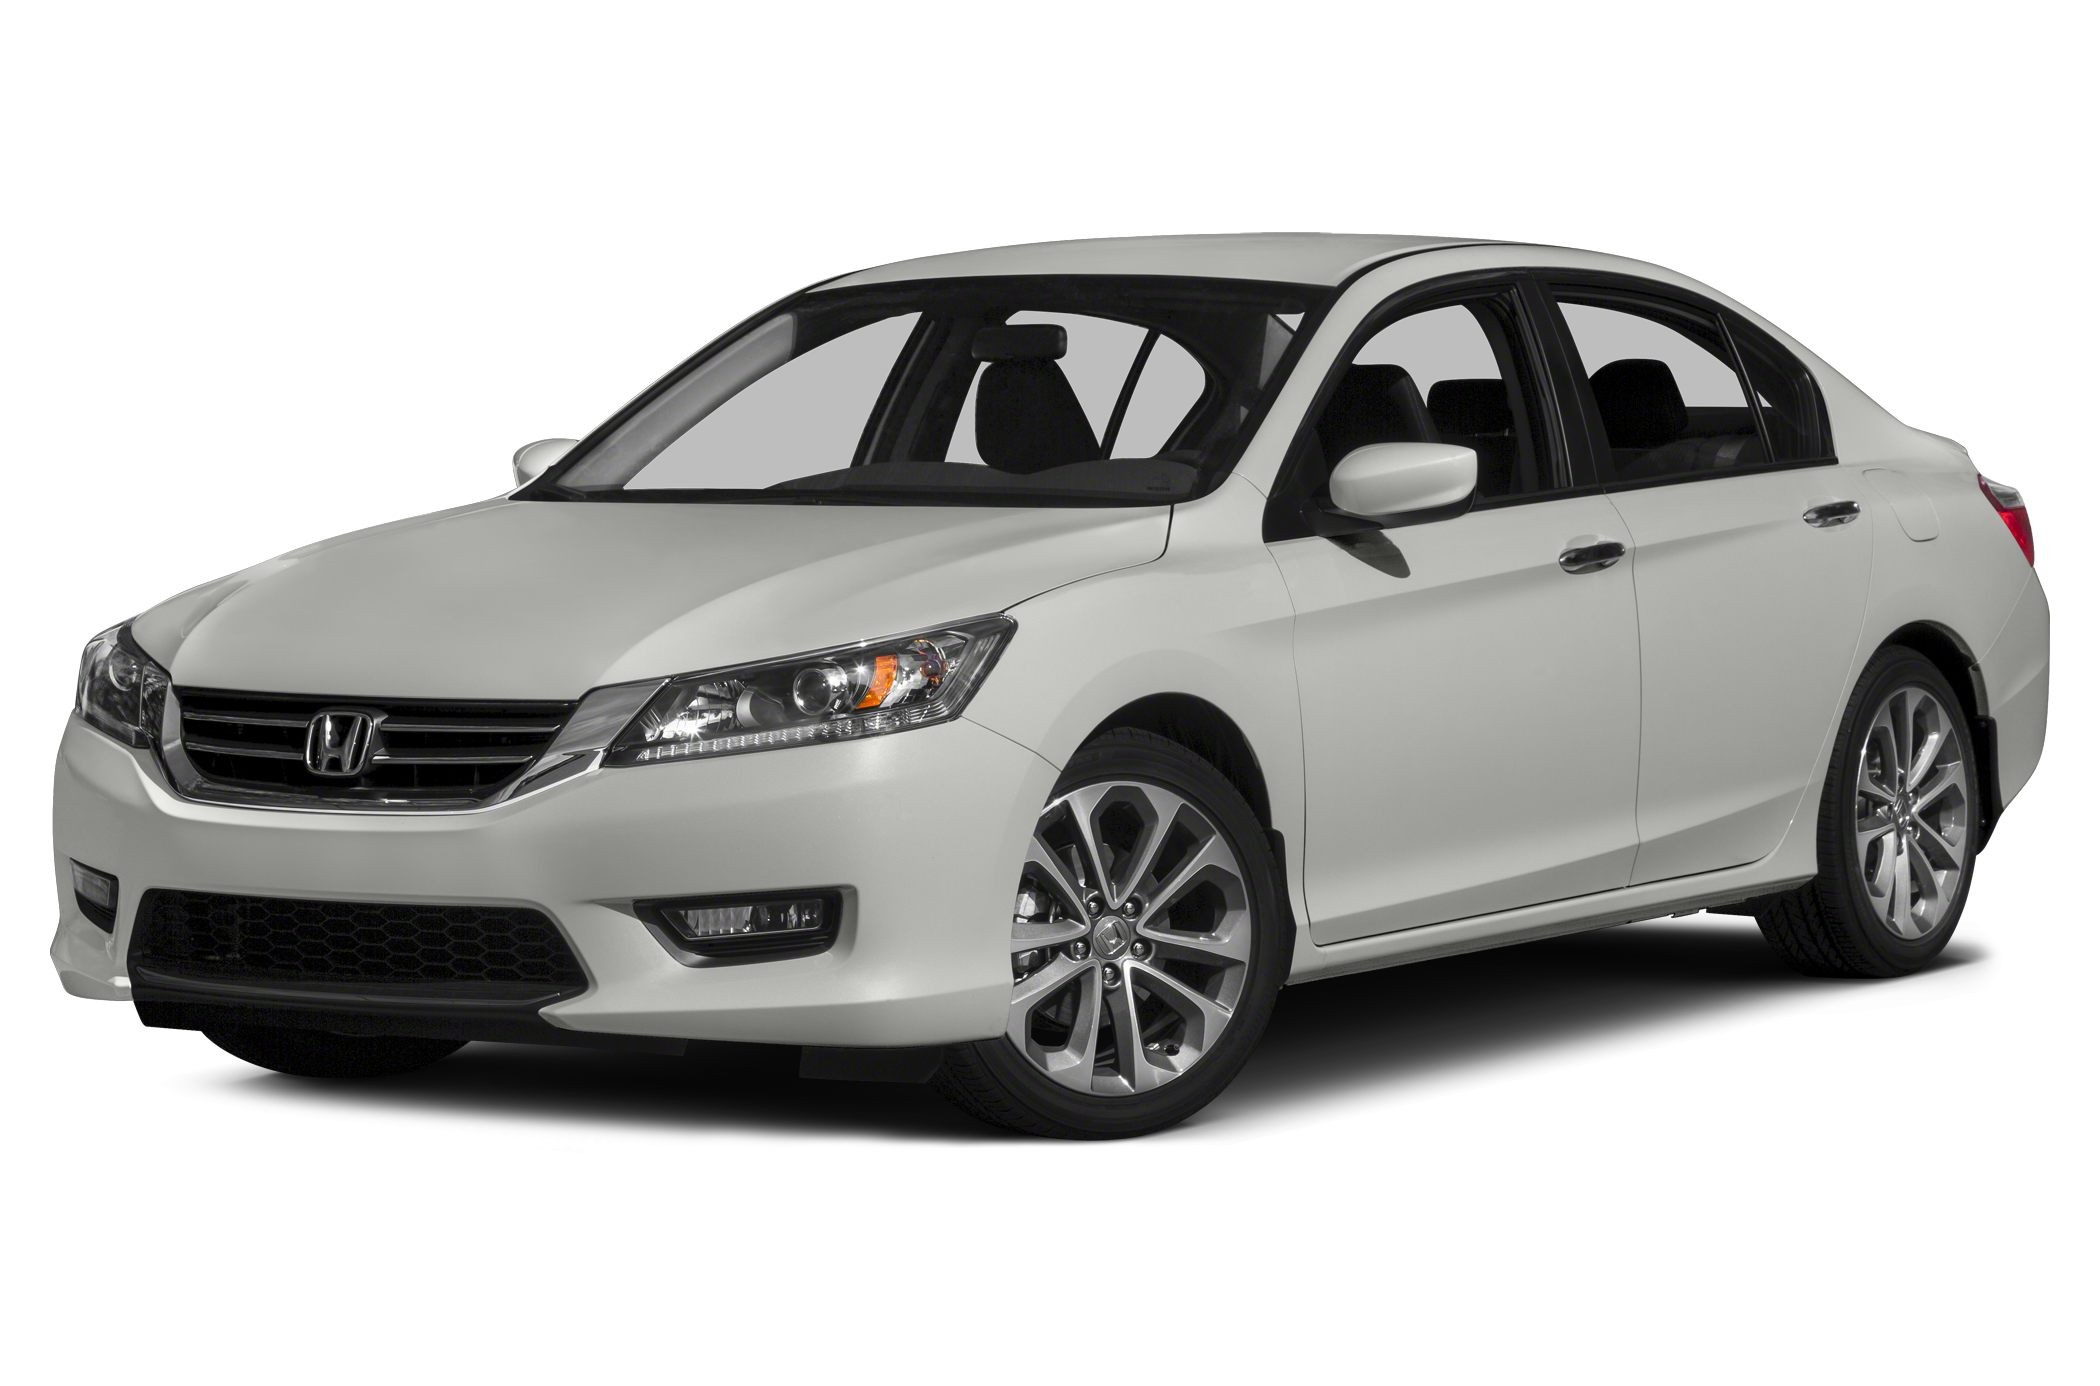 2015 Honda Accord Sport This particular One-Owner pearl white Accord is absolutely gorgeous Excel